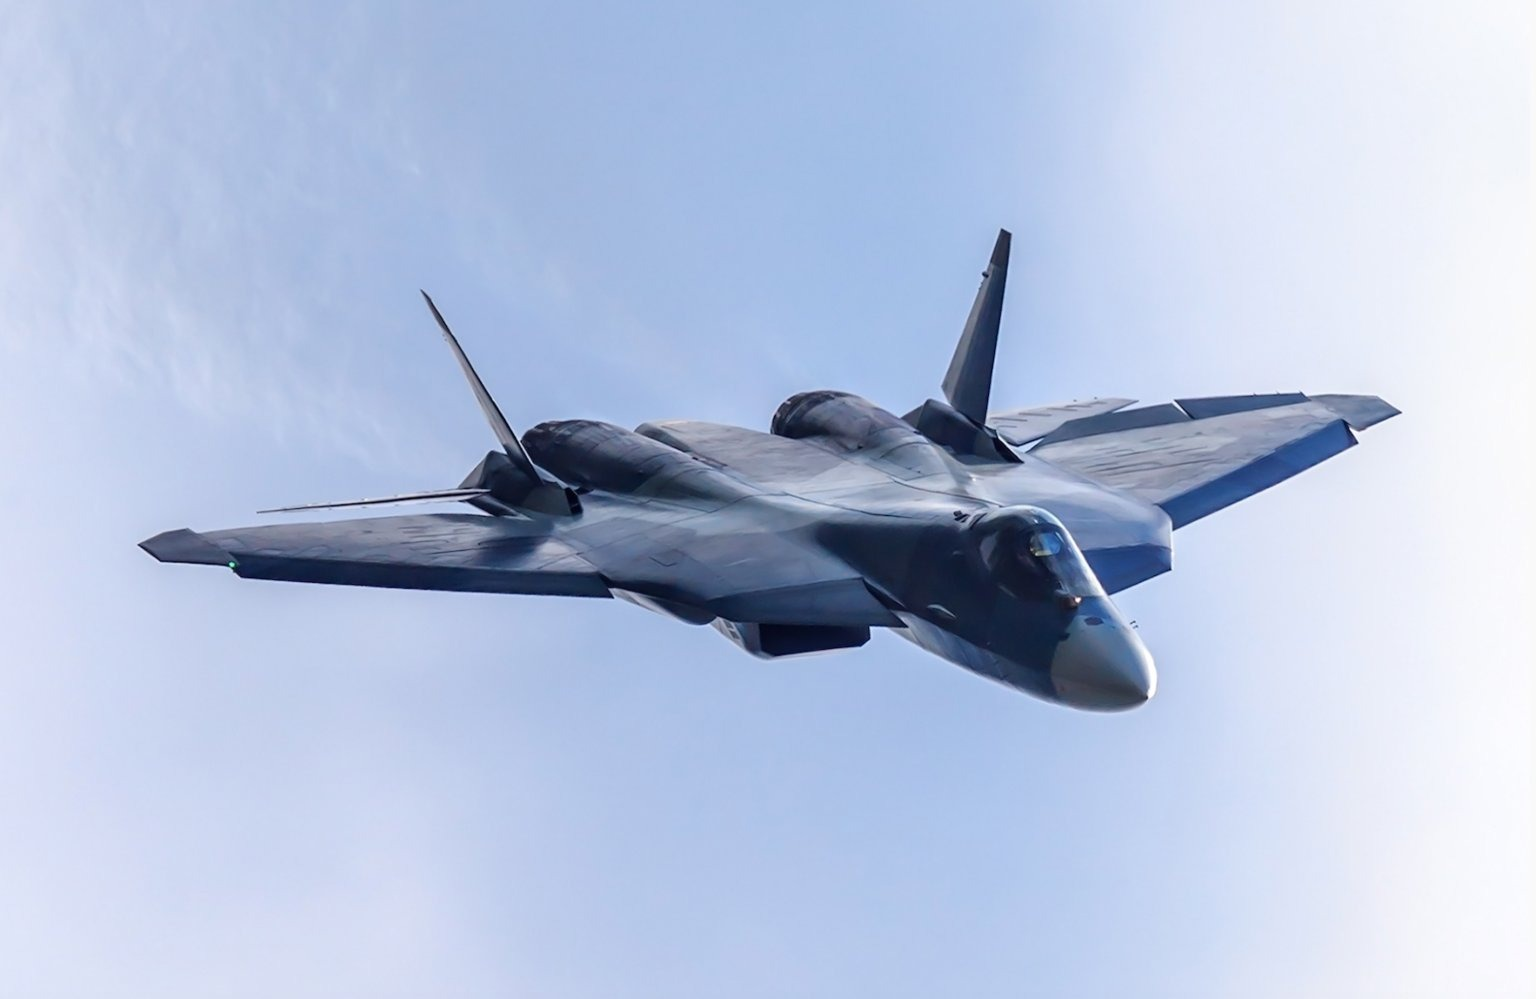 Russia Says Su-57 Stealth Fighter Will be Armed With Deadly Hypersonic Missiles - Warrior Maven